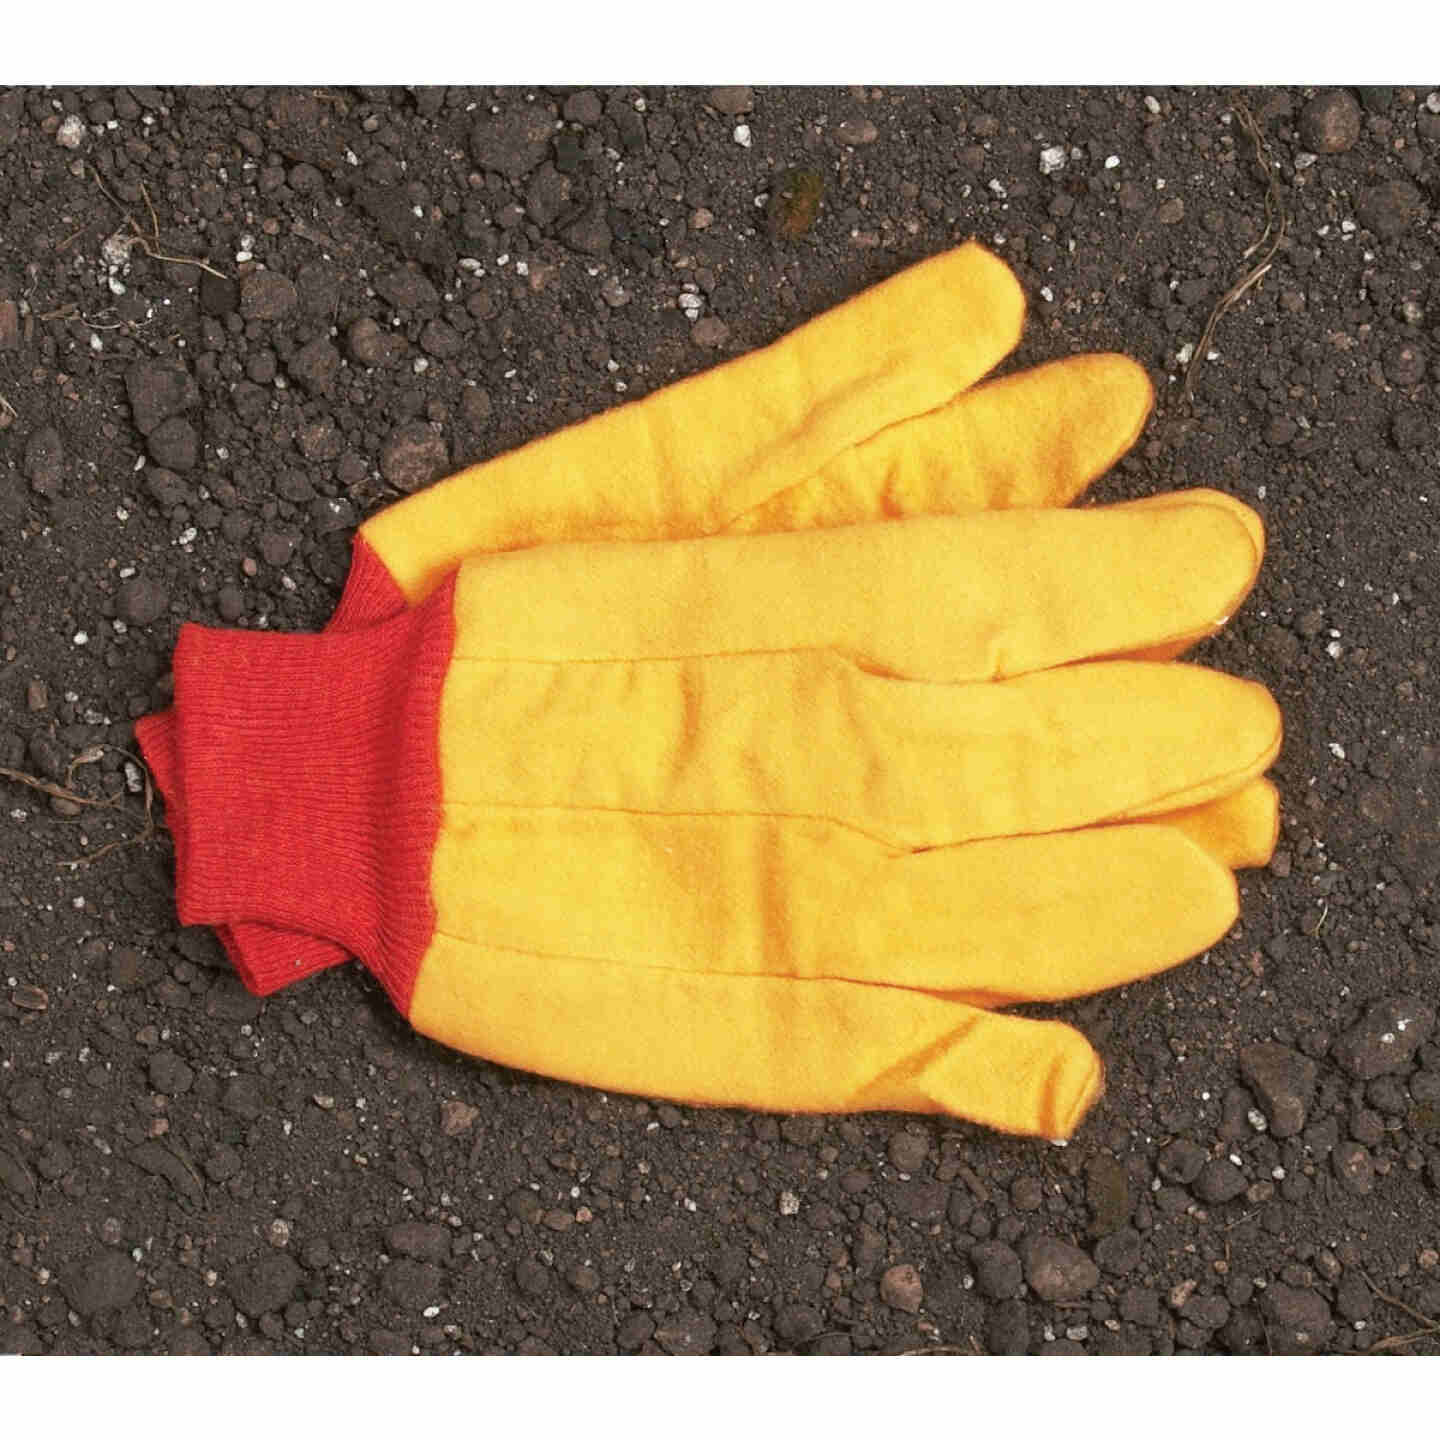 Do it Men's Large Fleece Chore Glove Image 2